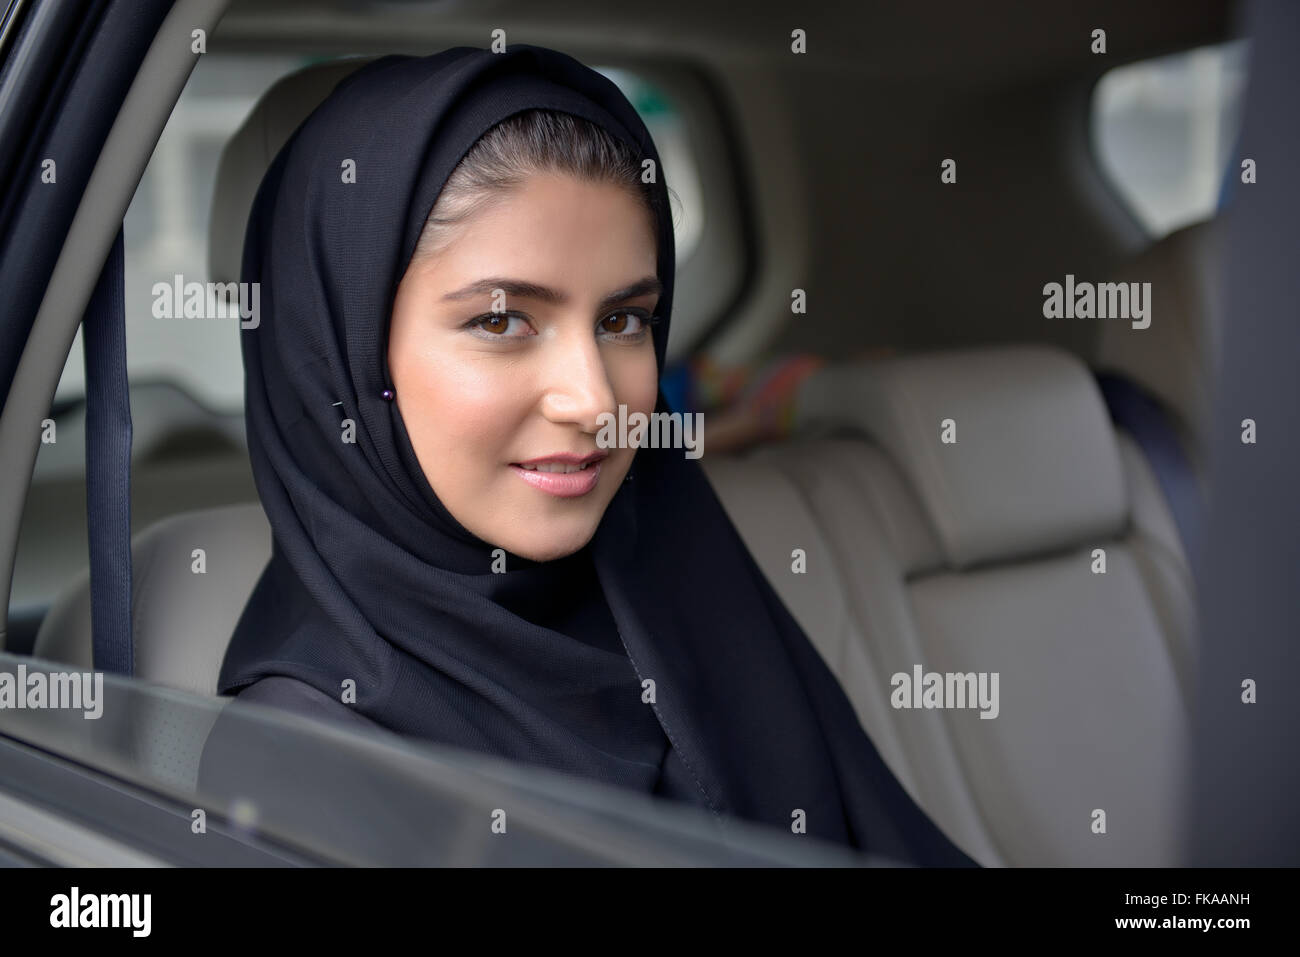 Young Emarati business woman in the car - Stock Image